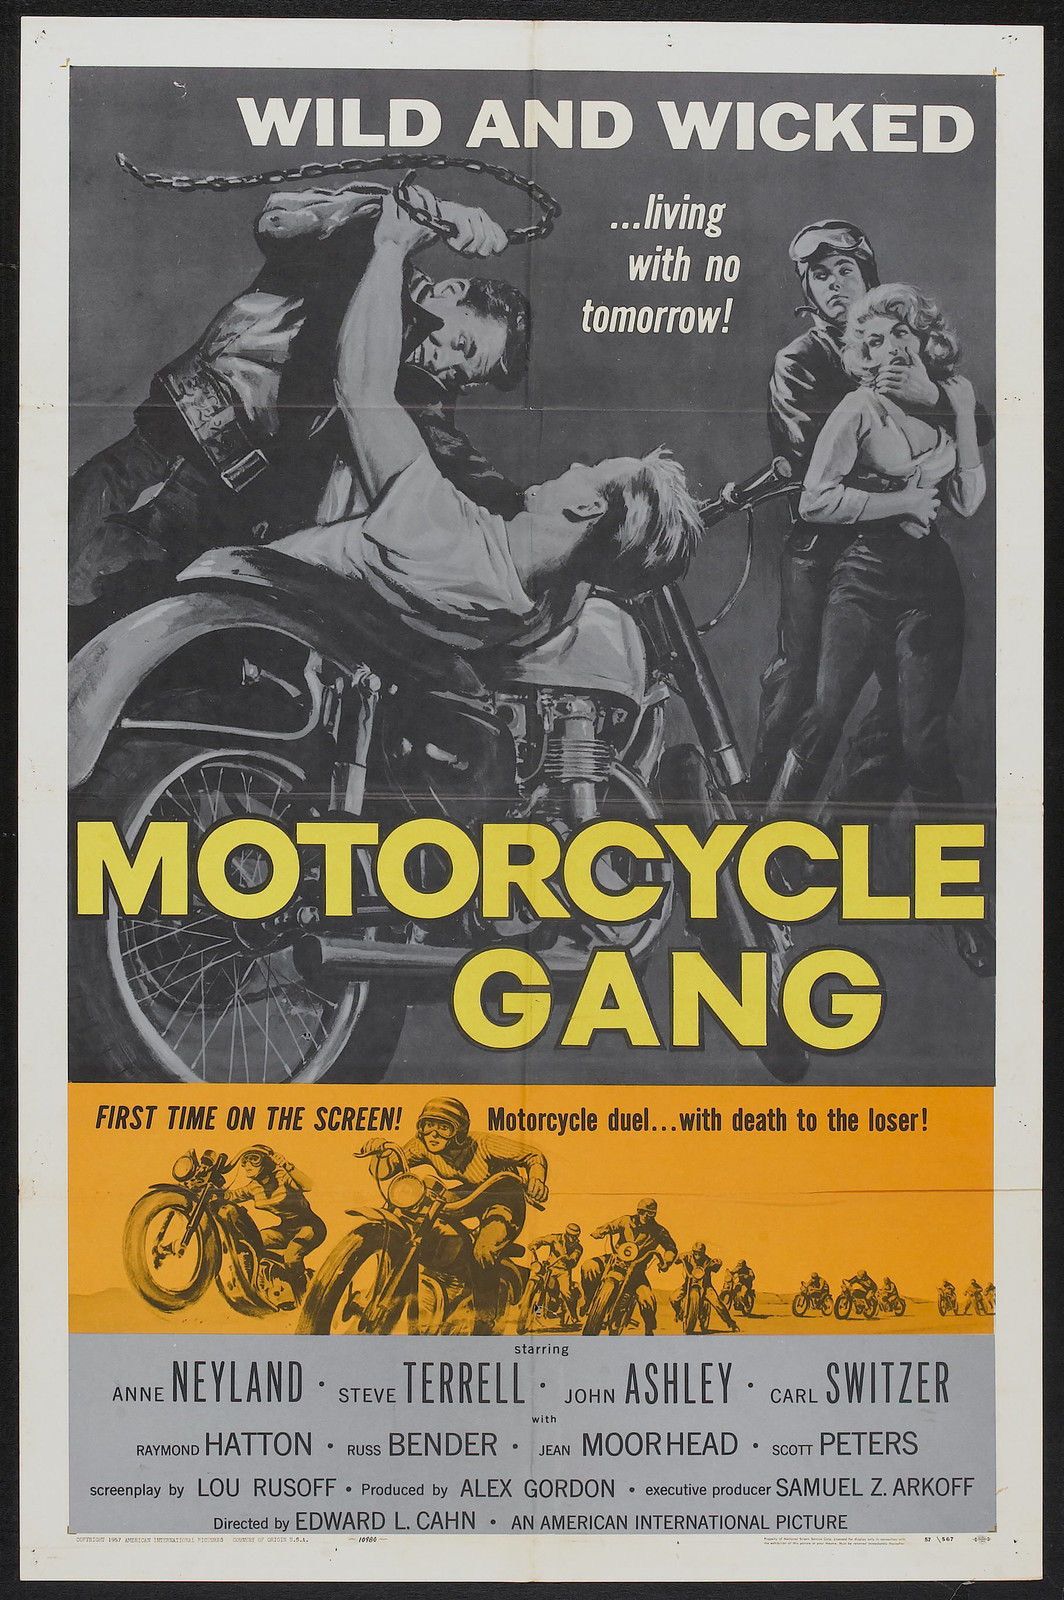 73664-Motorcycle-Gang-Movie-Wall-Print-Poster-Affiche